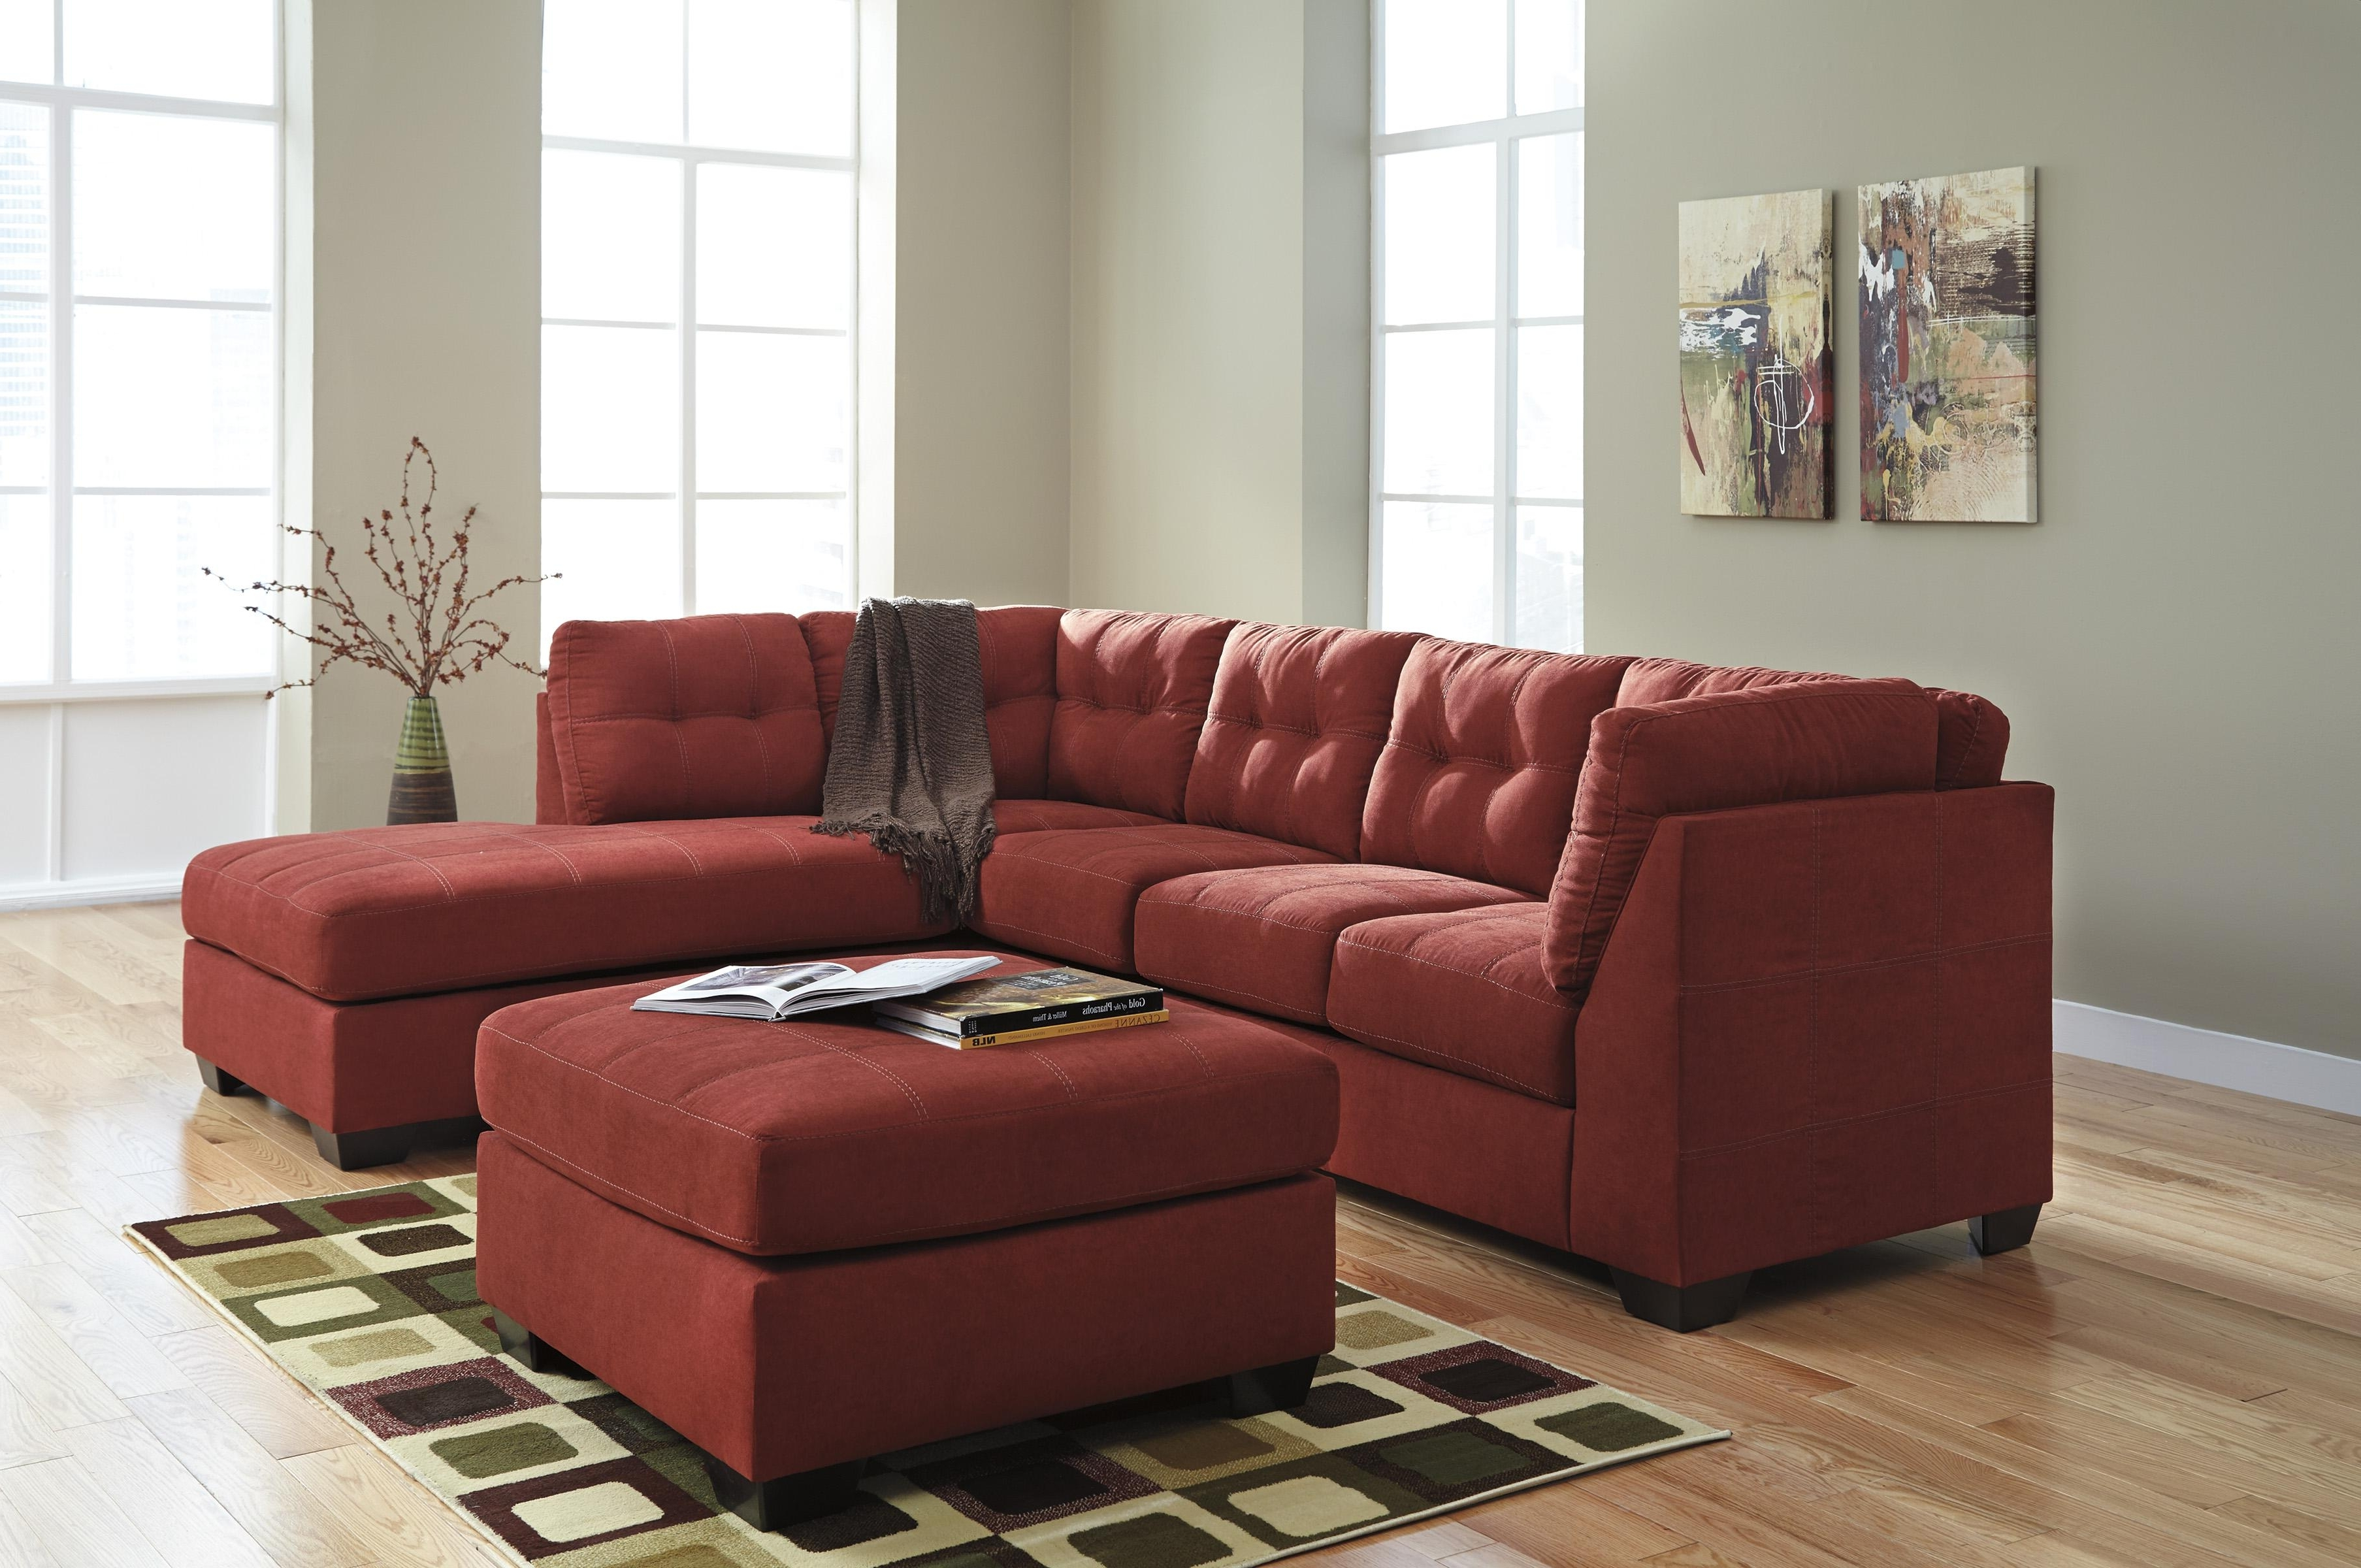 2 Piece Sectional Sofas With Chaise With Trendy Benchcraft Maier – Sienna 2 Piece Sectional W/ Sleeper Sofa (View 2 of 15)